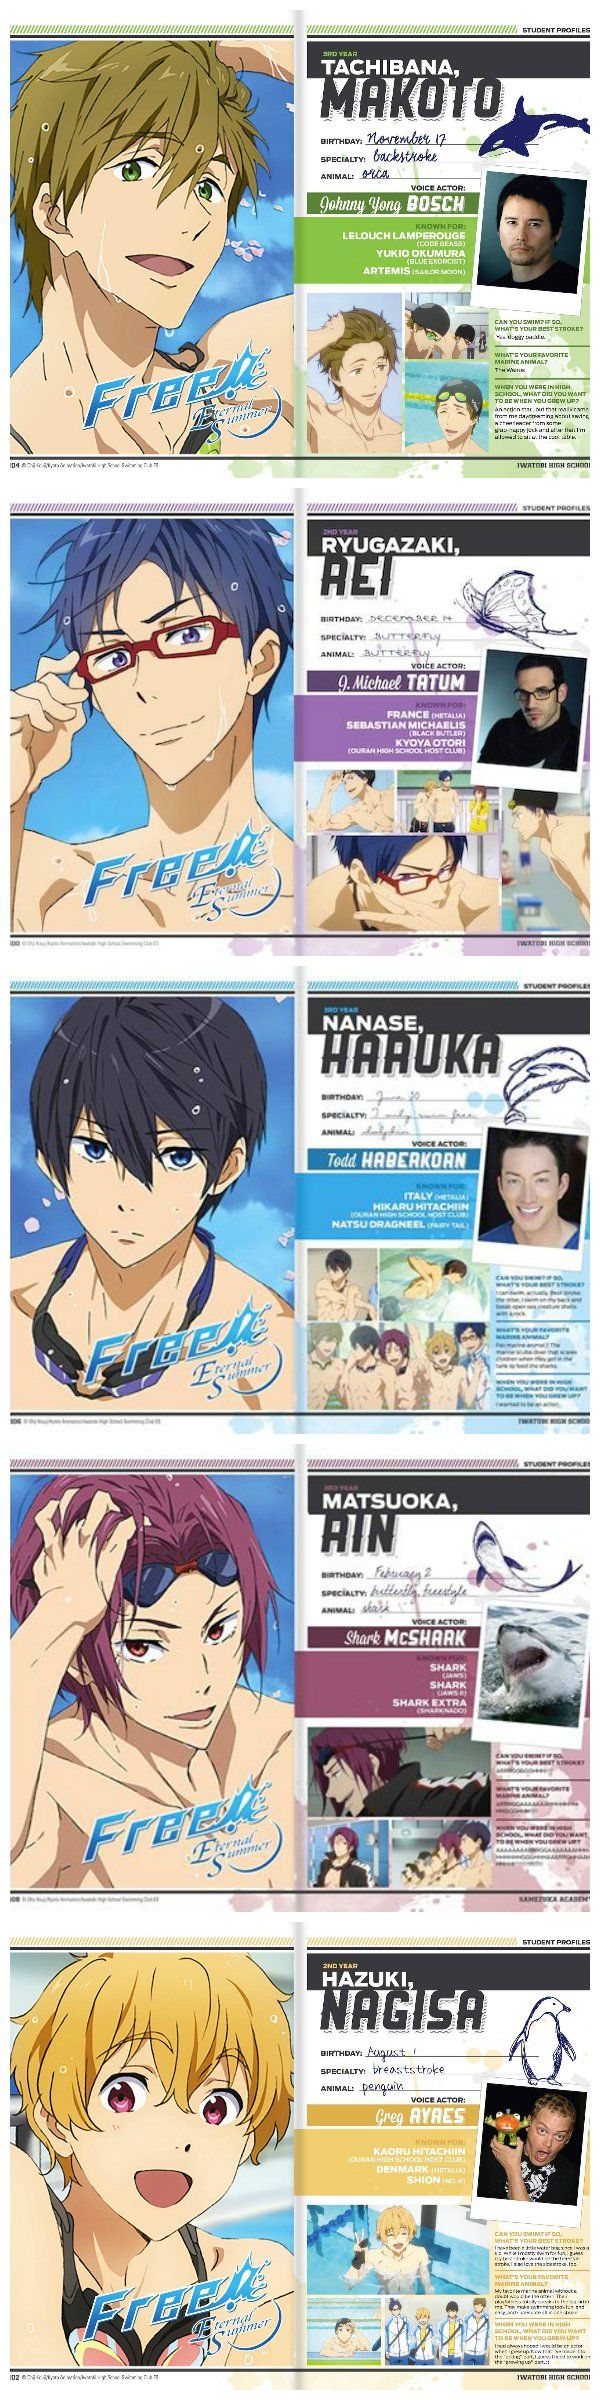 this is the Free! English dubbed cast. Im so excited!! And the voice actor for Rin is supposed to be Vic Mignogna